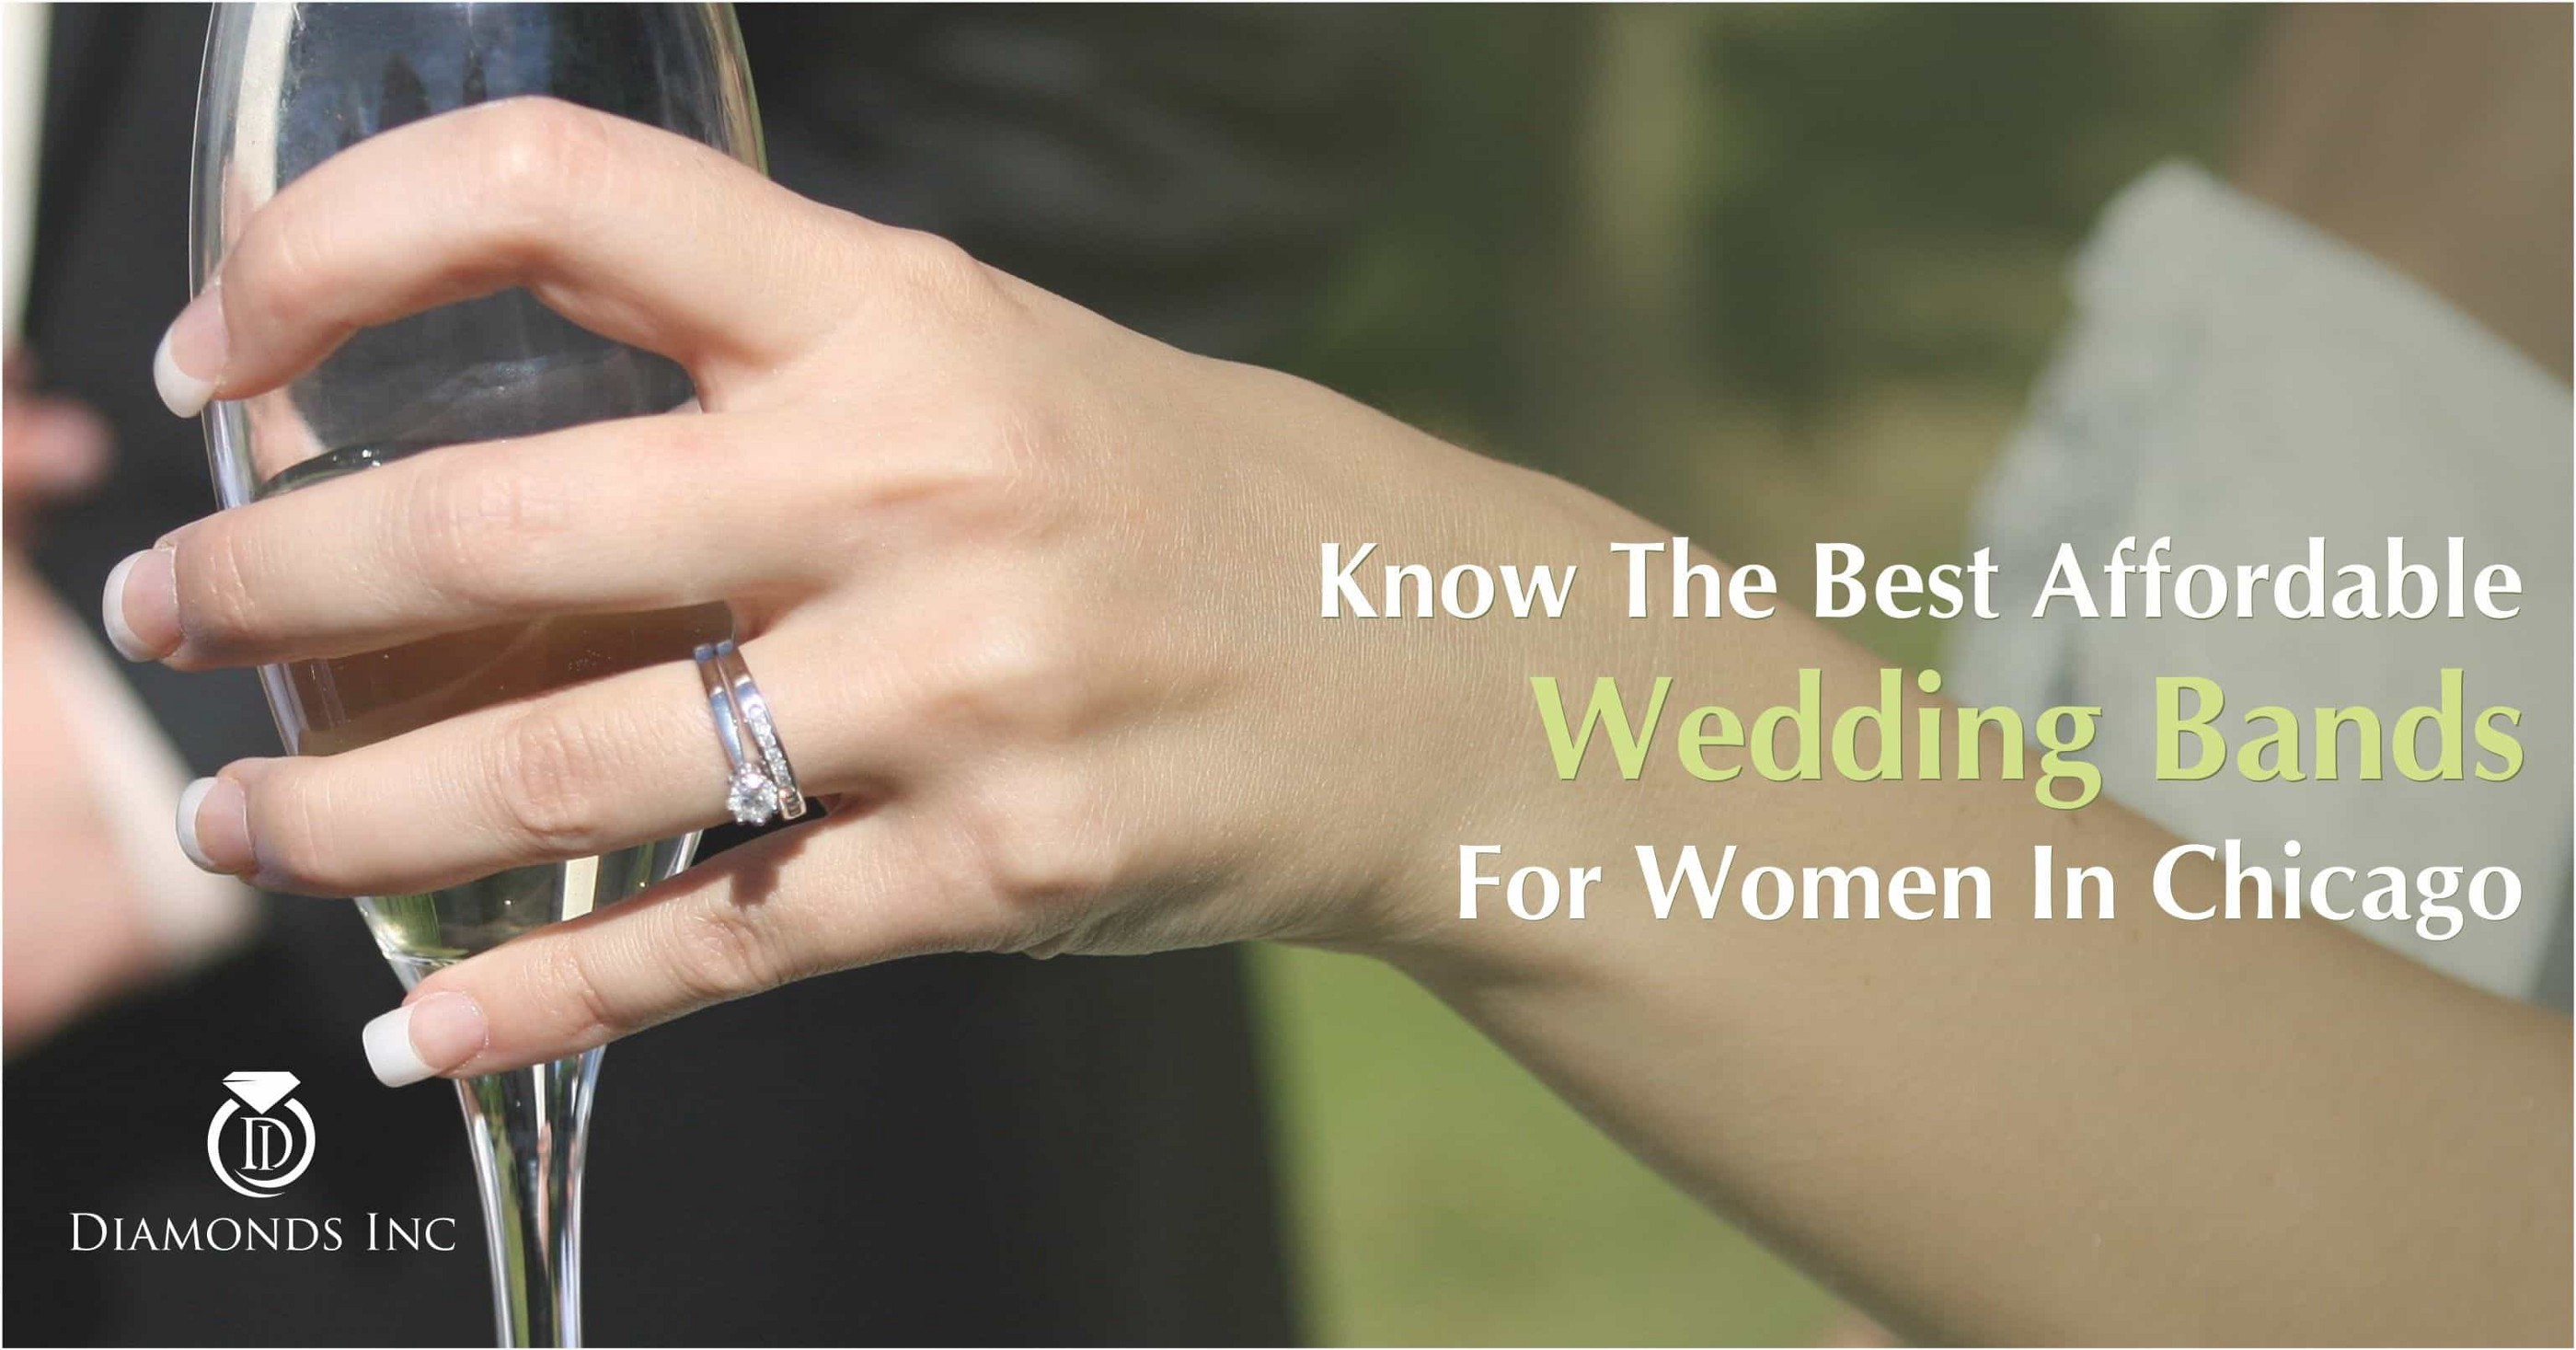 Know The Best Affordable Wedding Bands For Women In Chicago